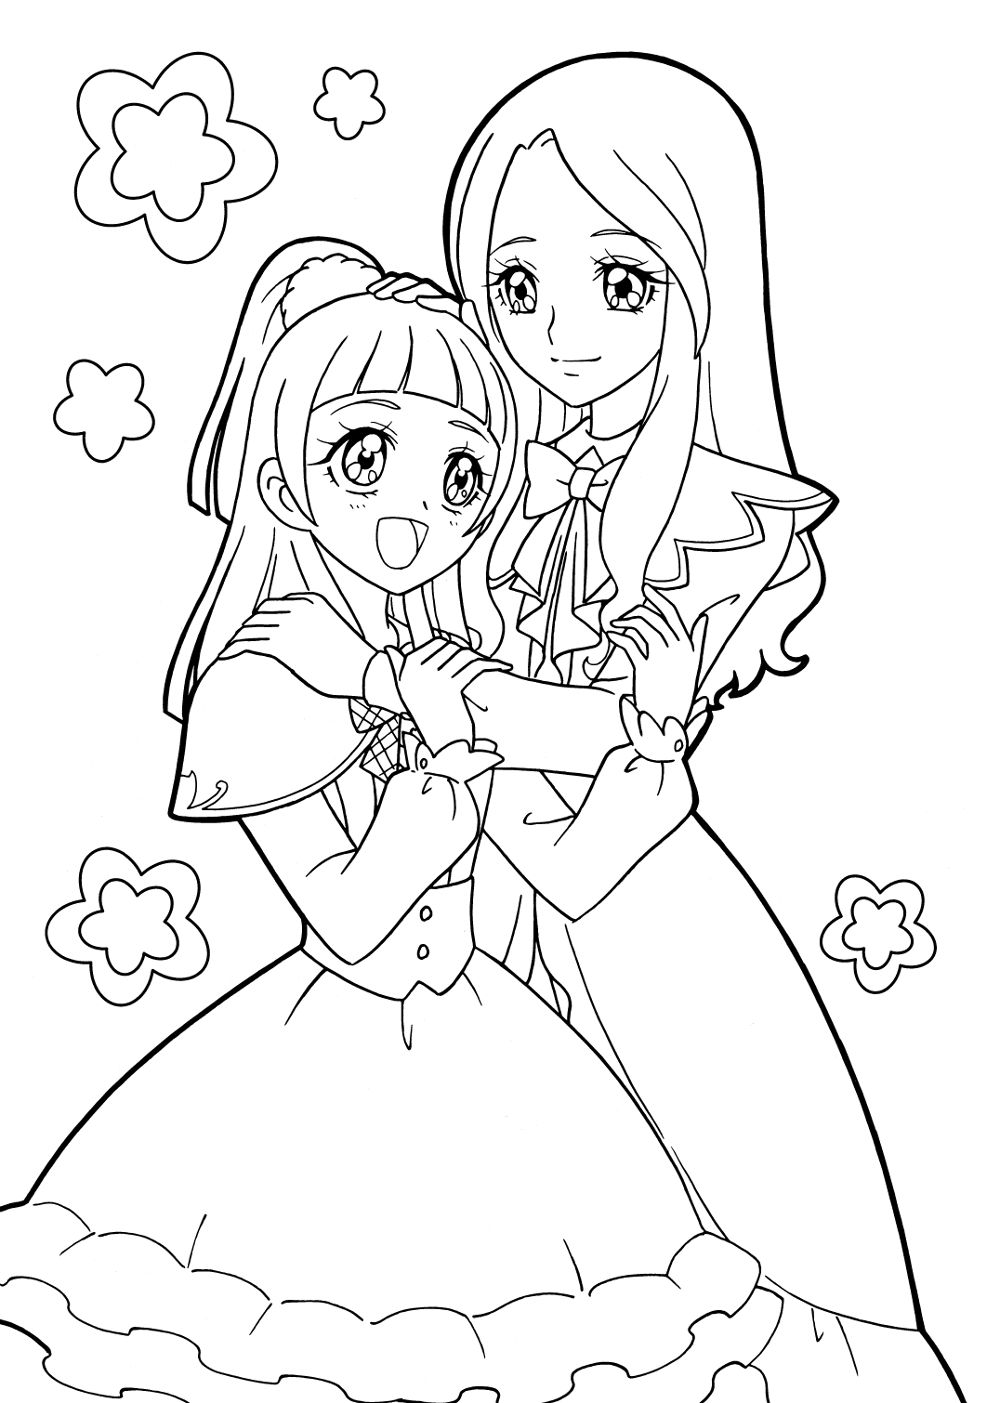 Pin by Michelle on Anime coloring pages! | Pinterest ...